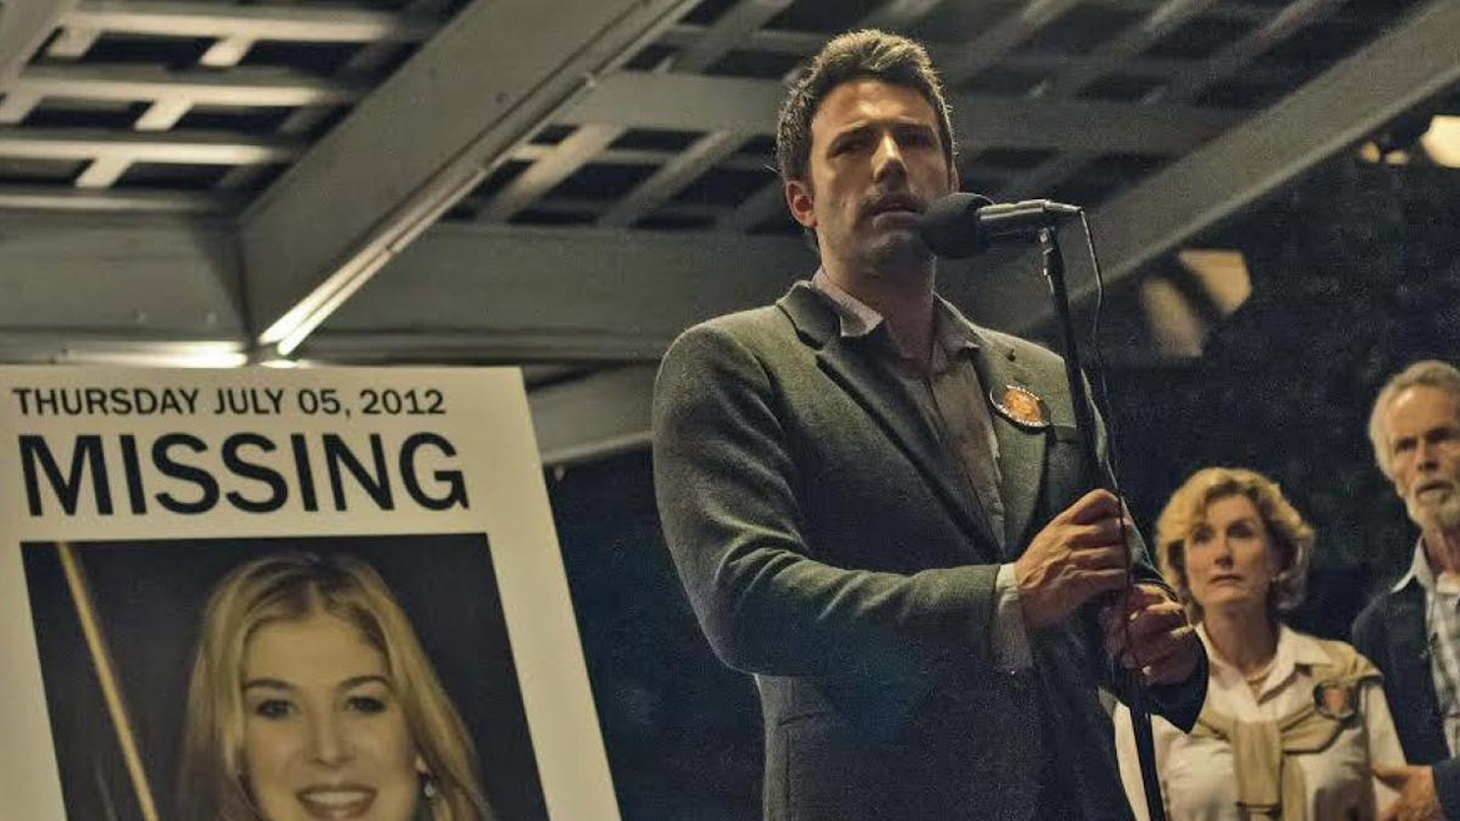 Rather than let nuance intrude,Gone Girl doubles down on perversity, and its stars follow suit.